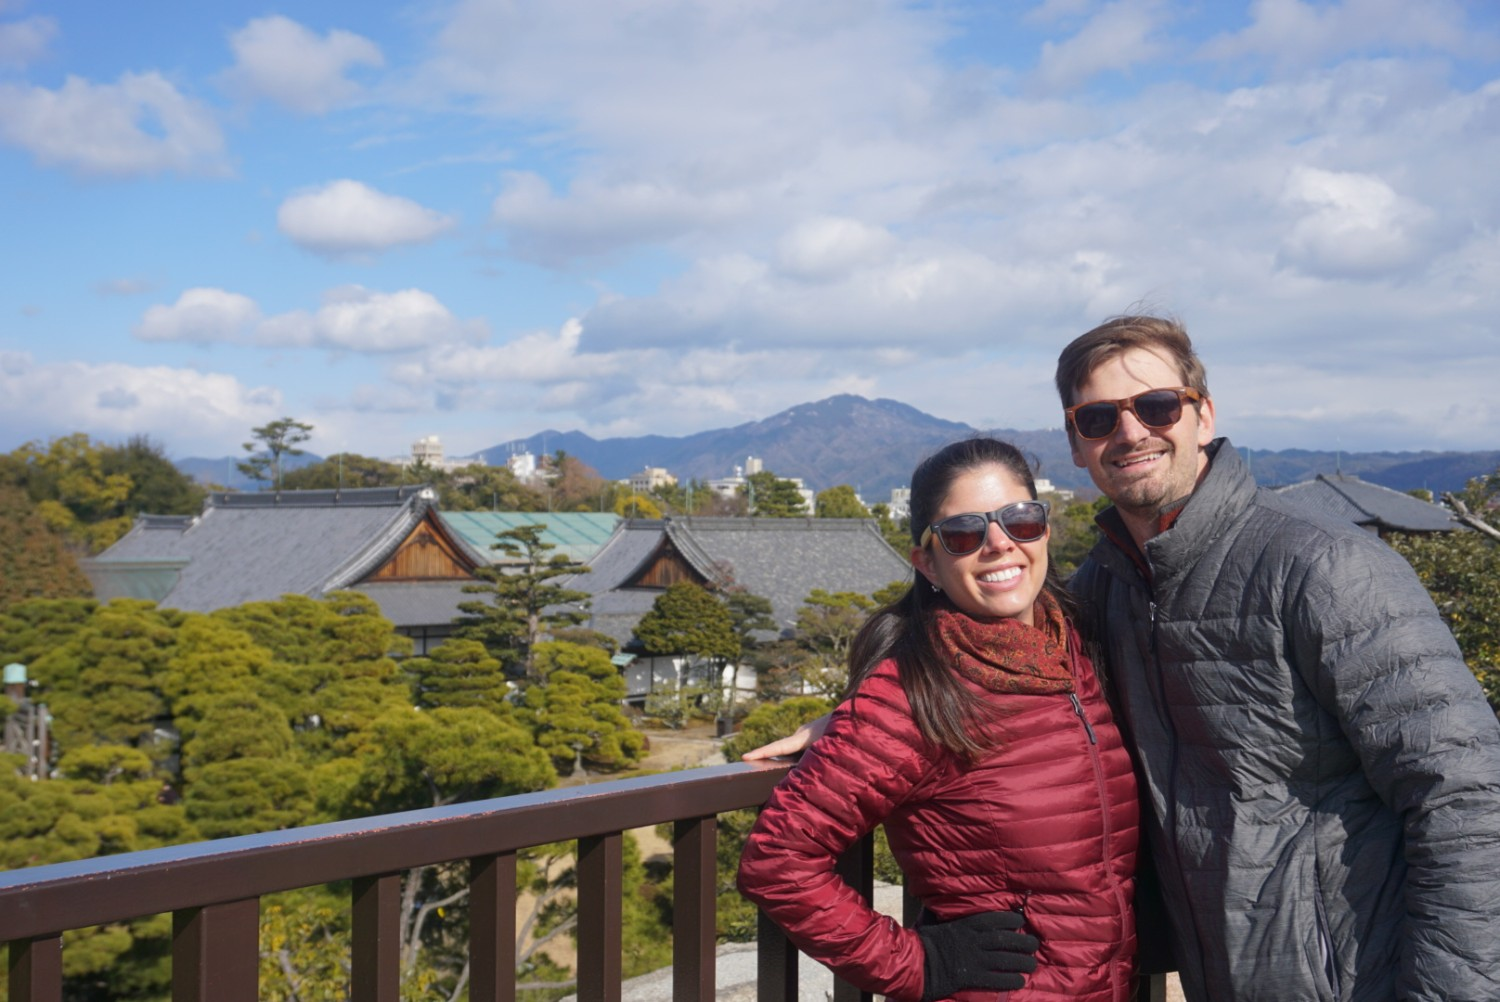 Matt and Kelly stand at the overlook point in the Nijo Castle in Kyoto, Japan. boldlygotravel.com